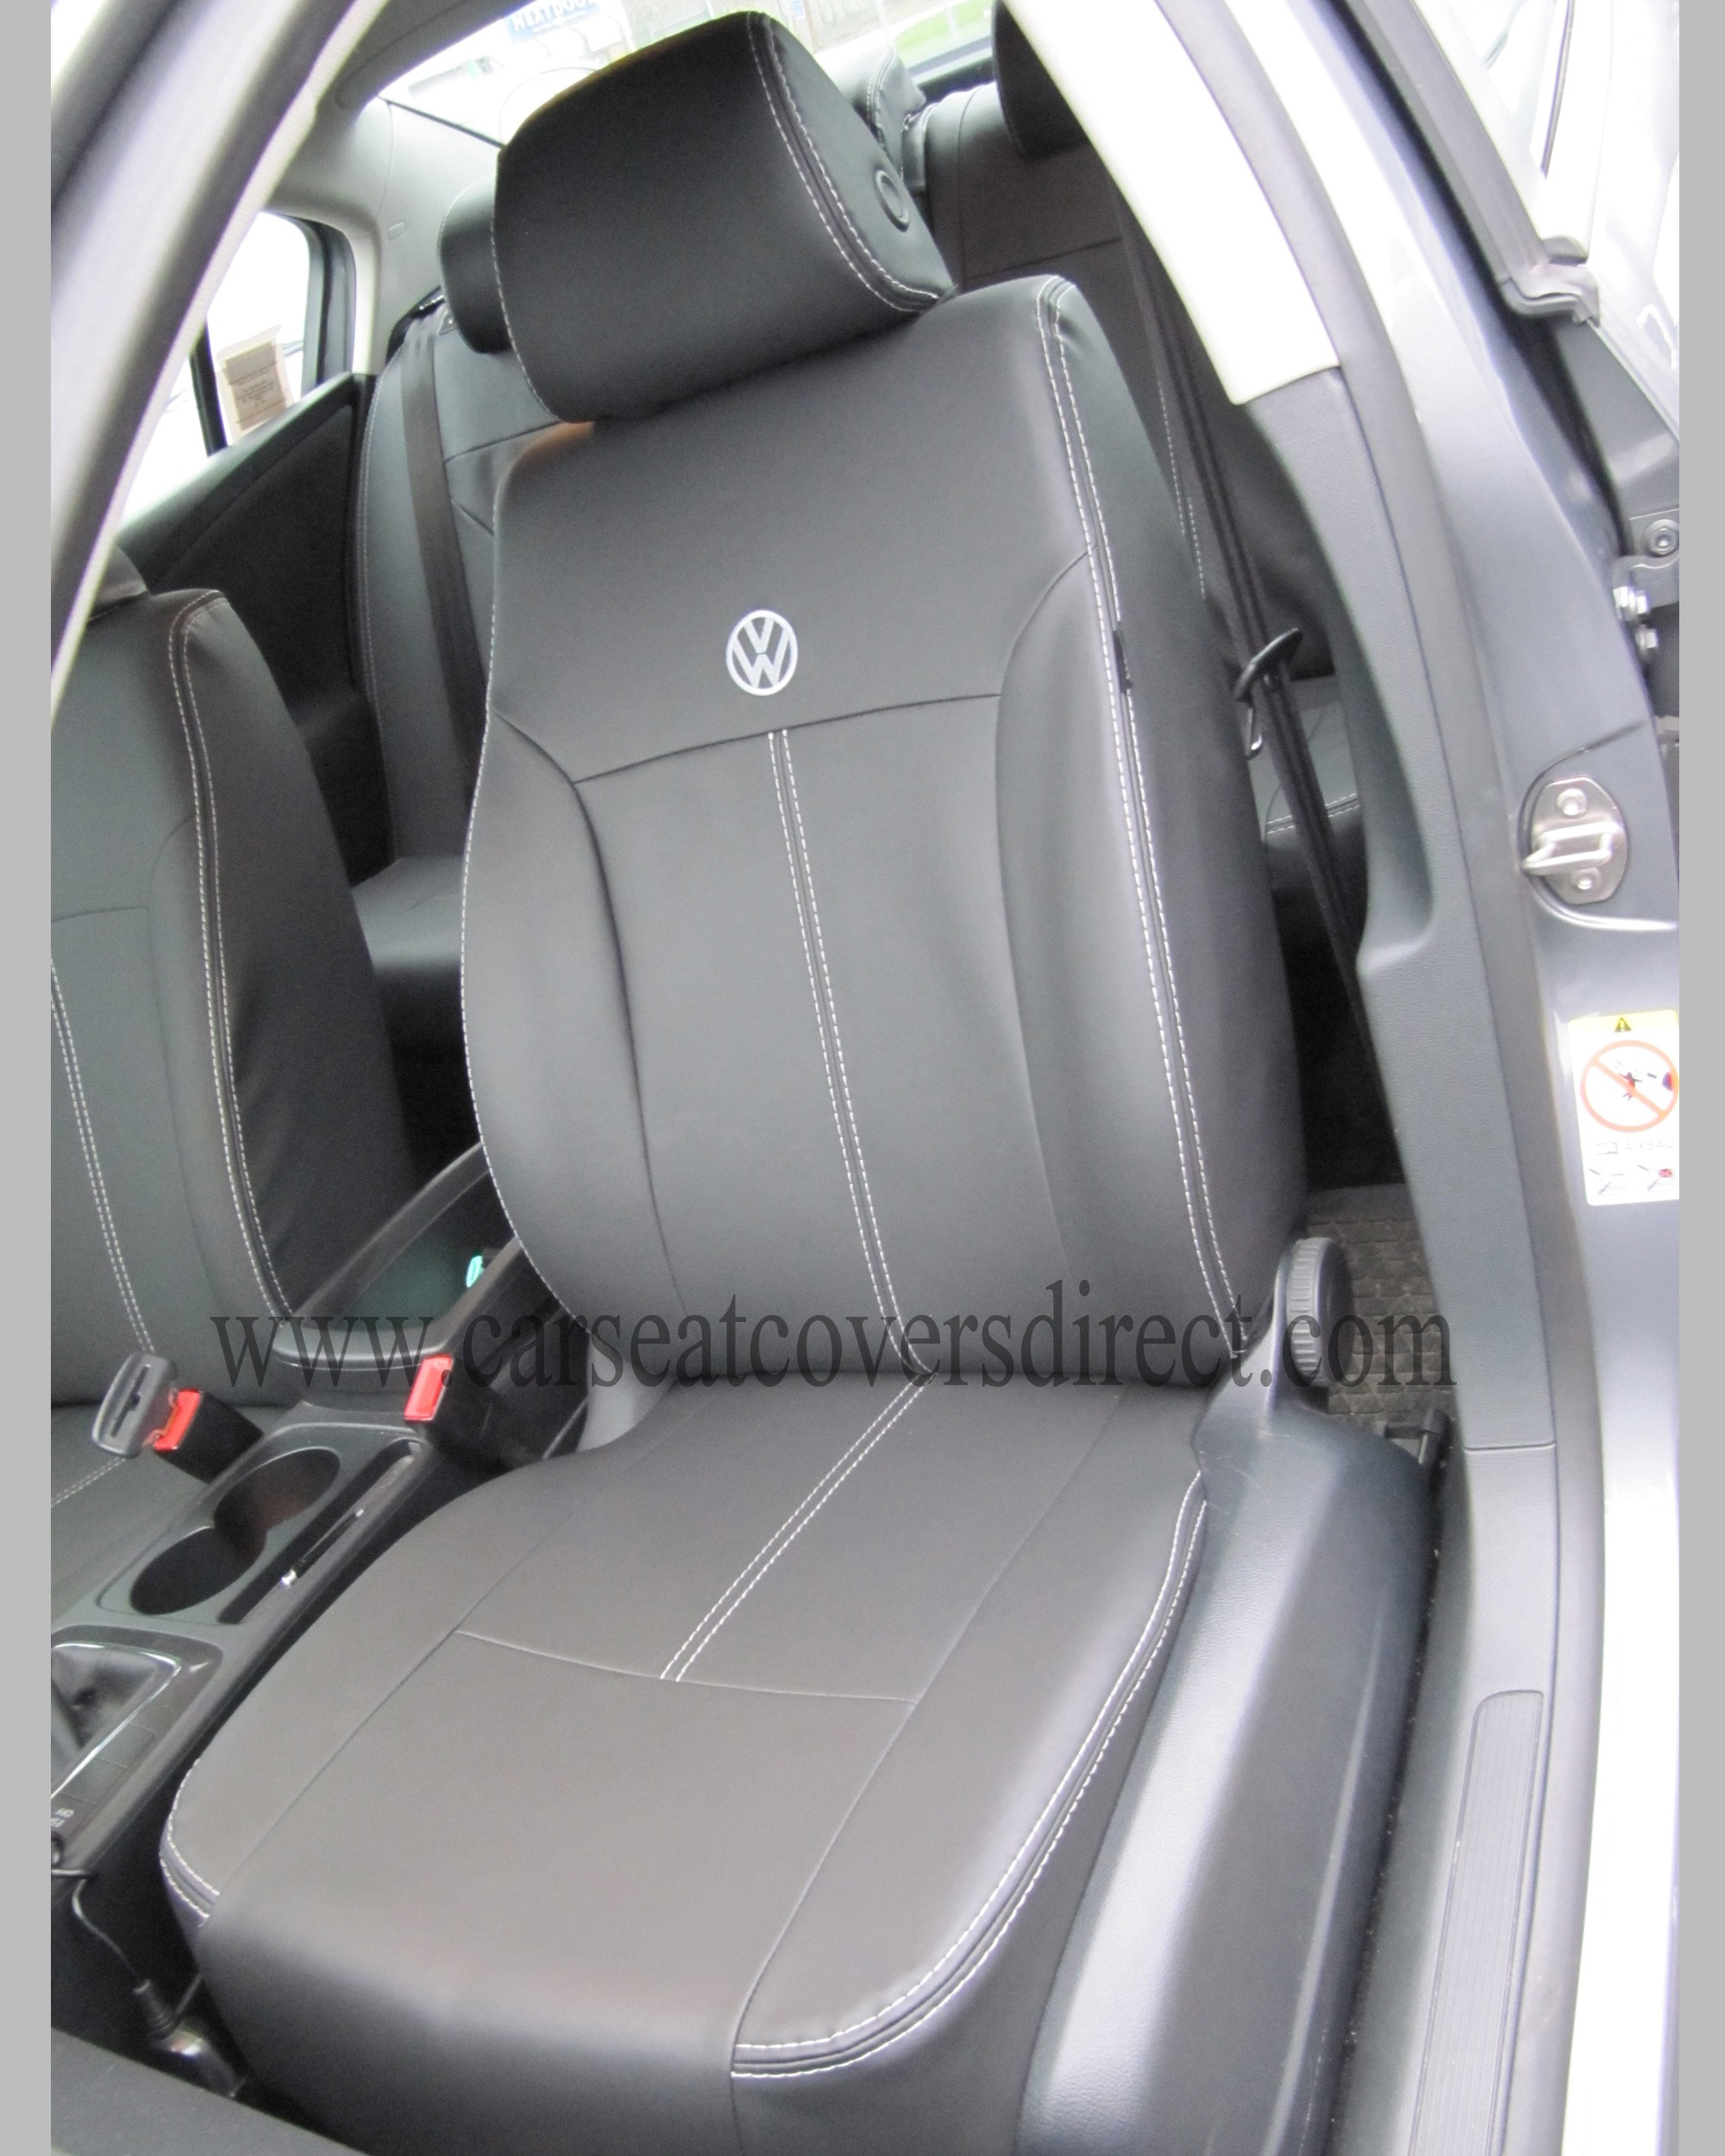 VOLKSWAGEN VW PASSAT B6 Taxi Pack Seat Covers Car Seat